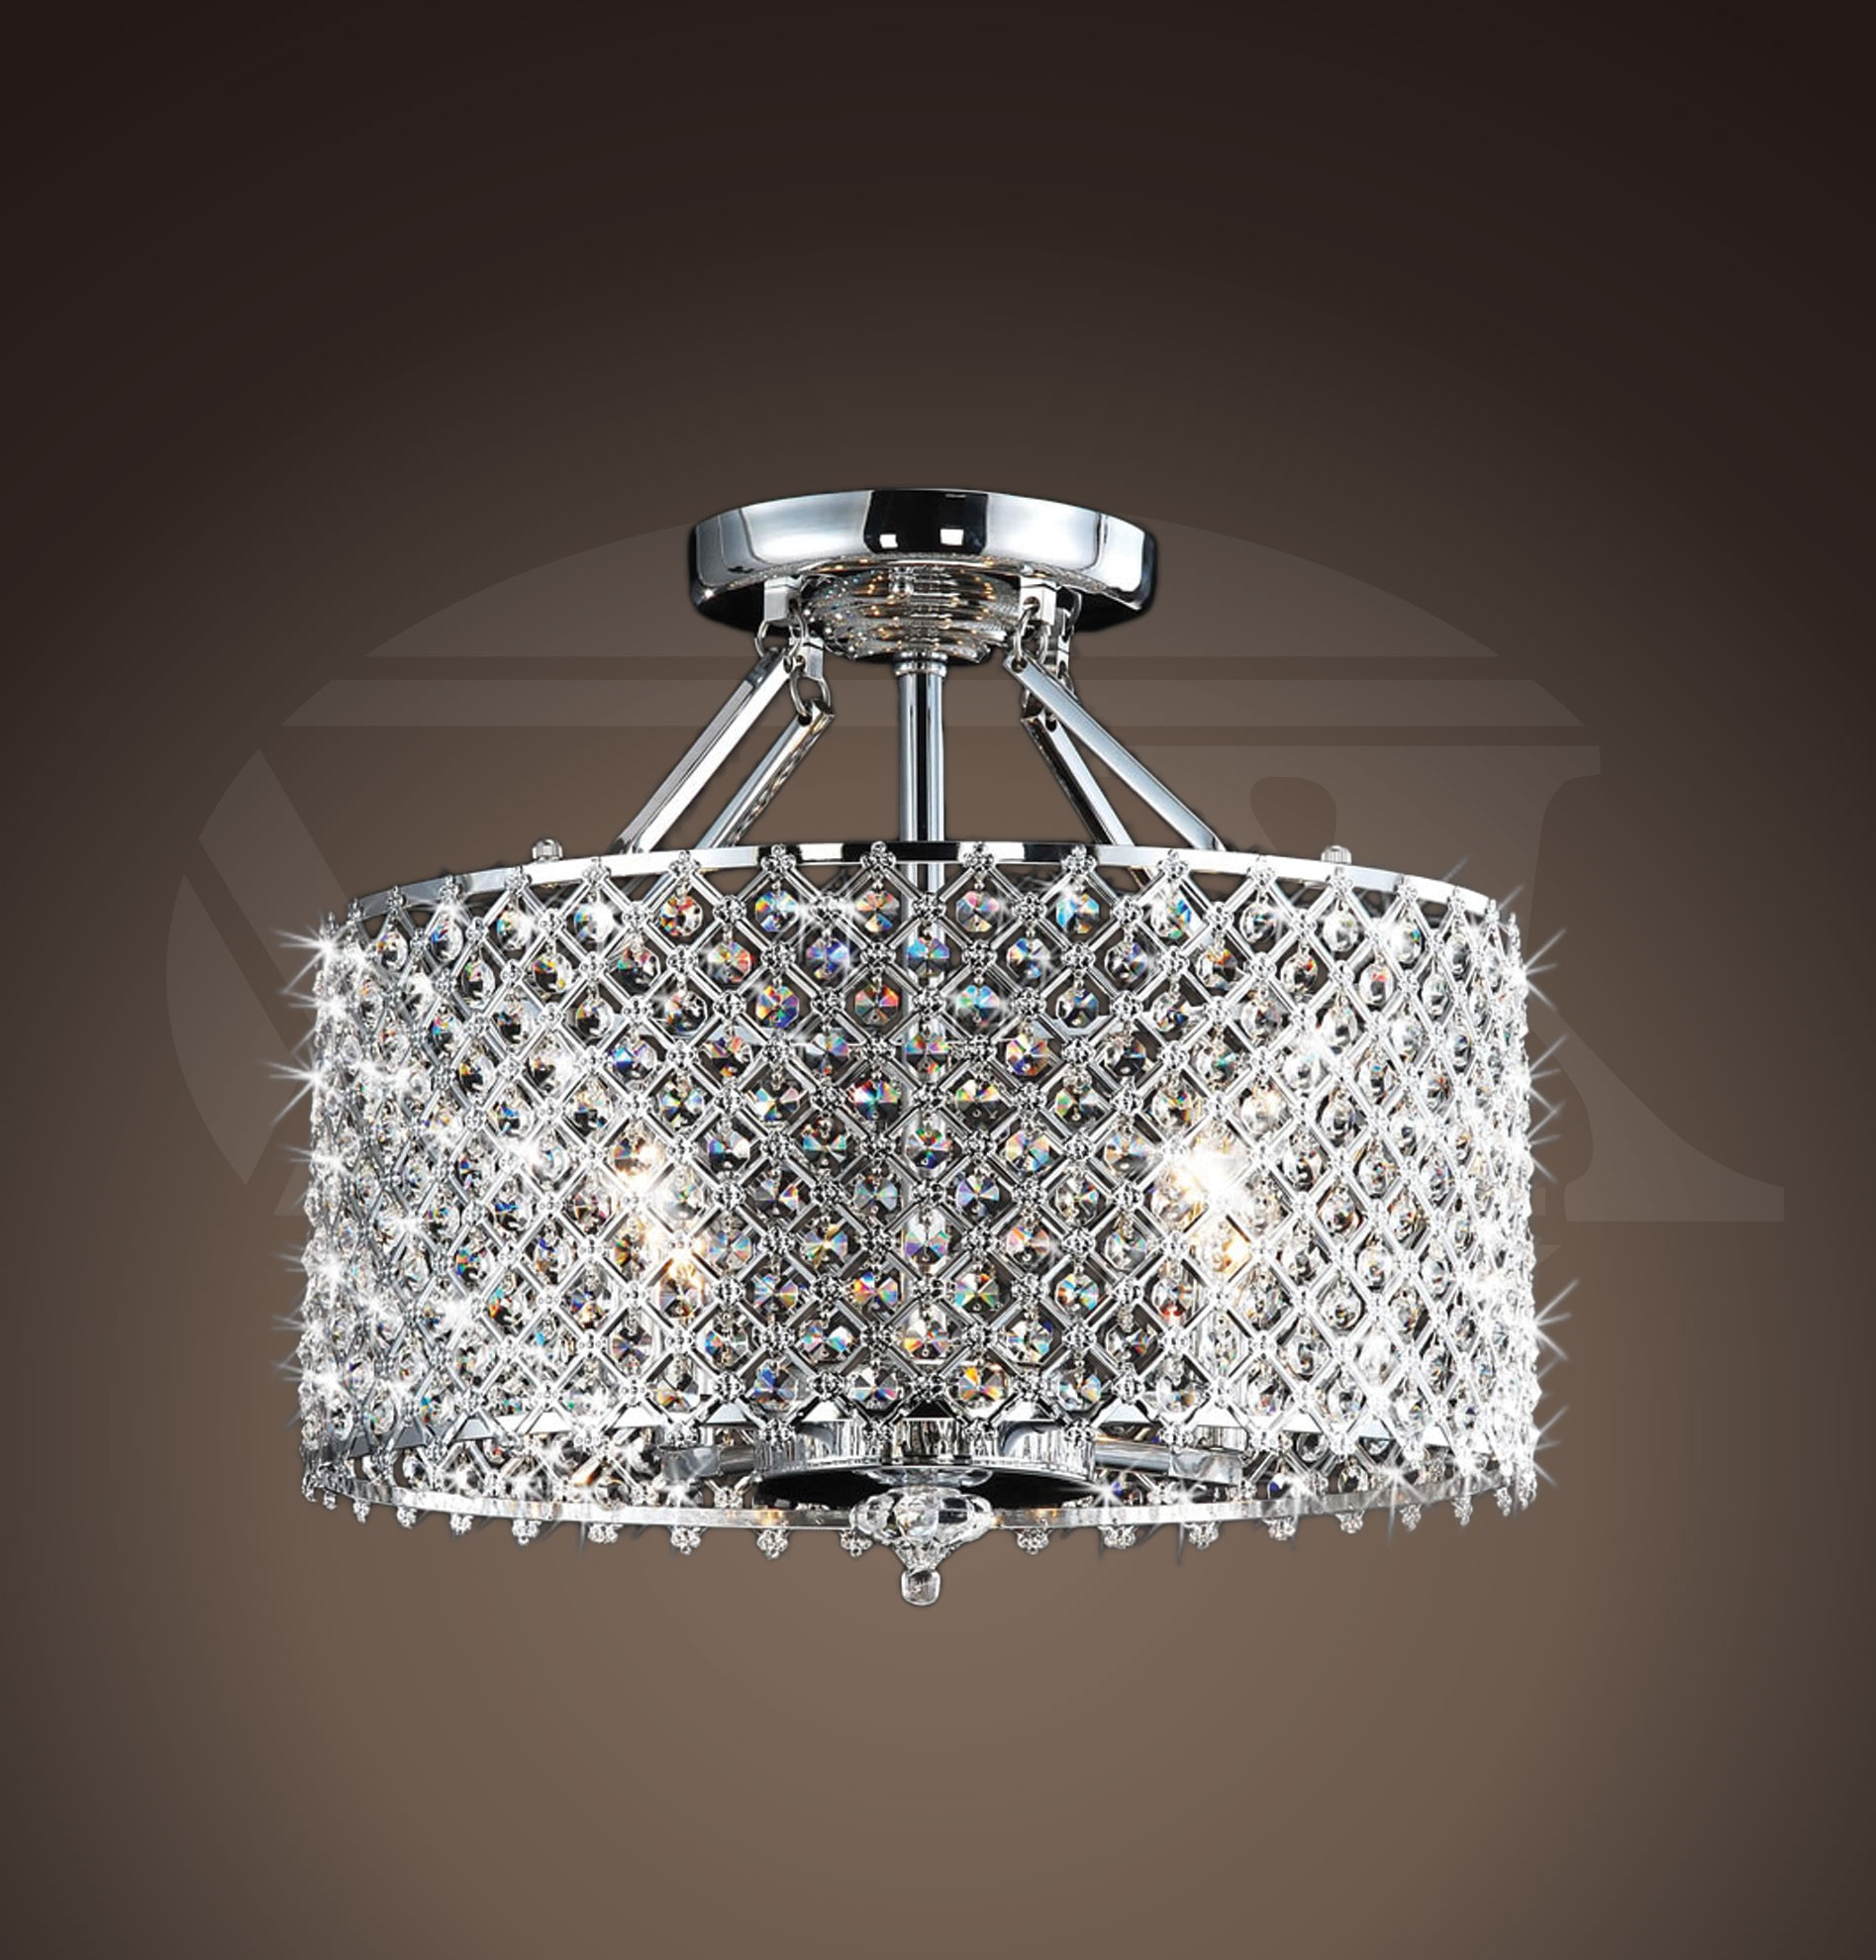 2019 Helina Chrome And Crystal 4 Light Round Ceiling Flush Mount With Regard To Helina 1 Light Pendants (View 11 of 20)